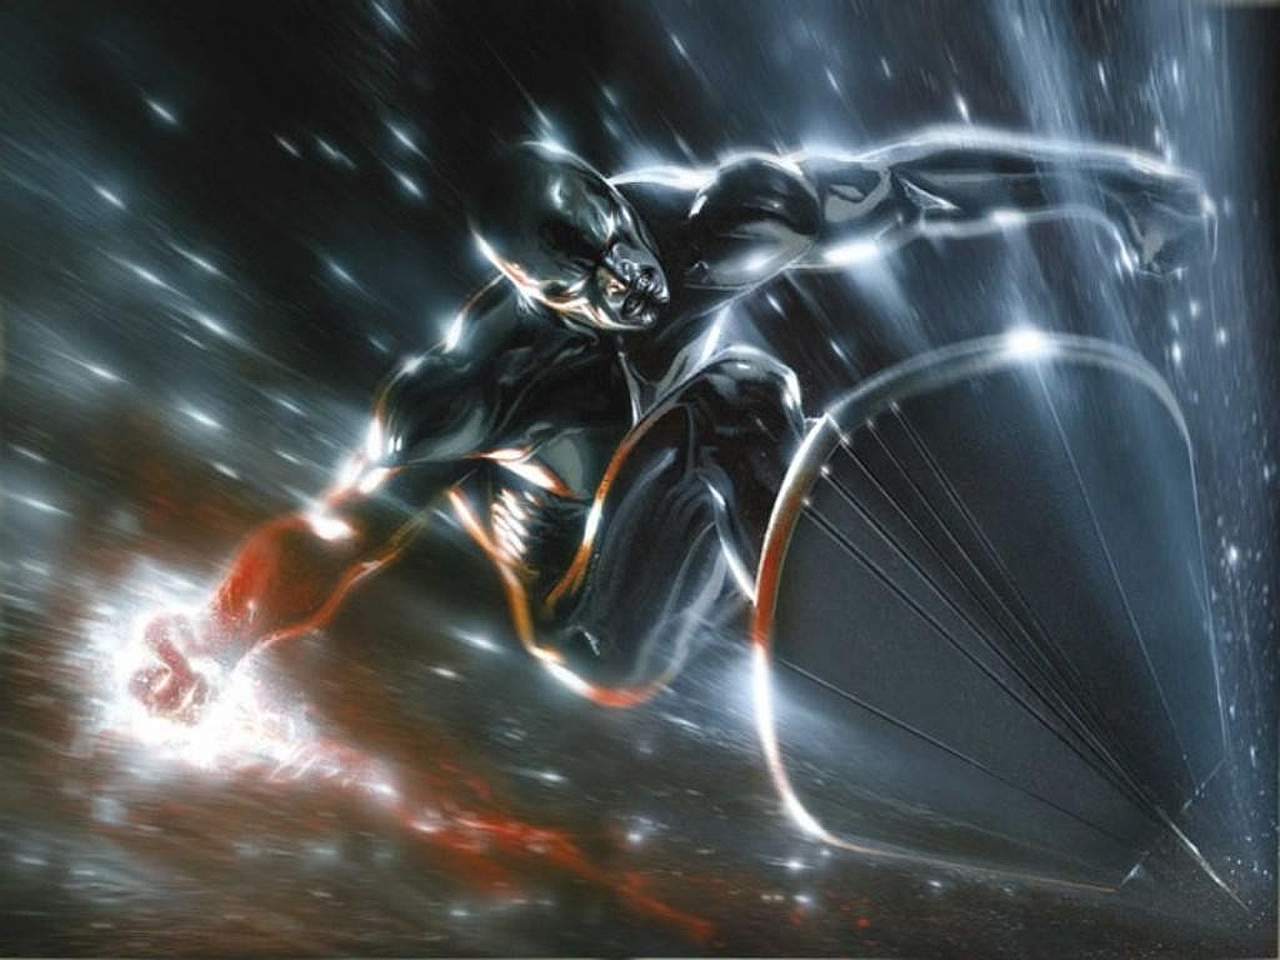 Silver Surfer Computer Wallpapers Desktop Backgrounds 1280x960 ID 1280x960